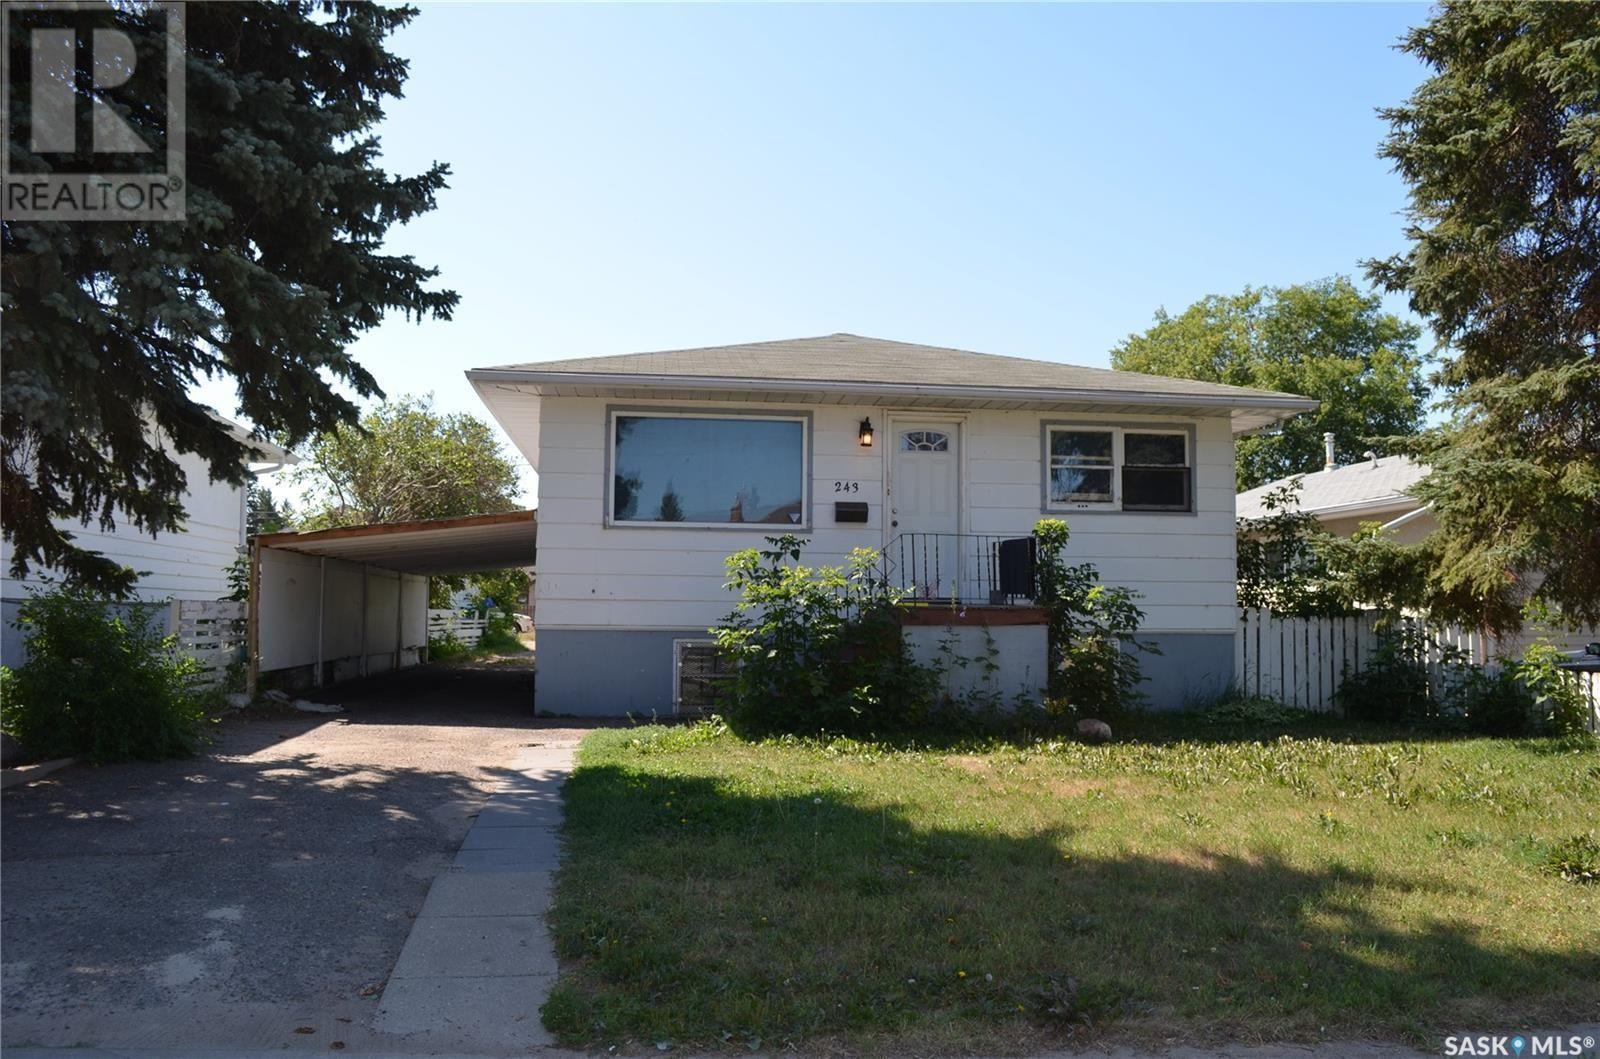 Main Photo: 243 23rd ST W in Prince Albert: House for sale : MLS®# SK865487